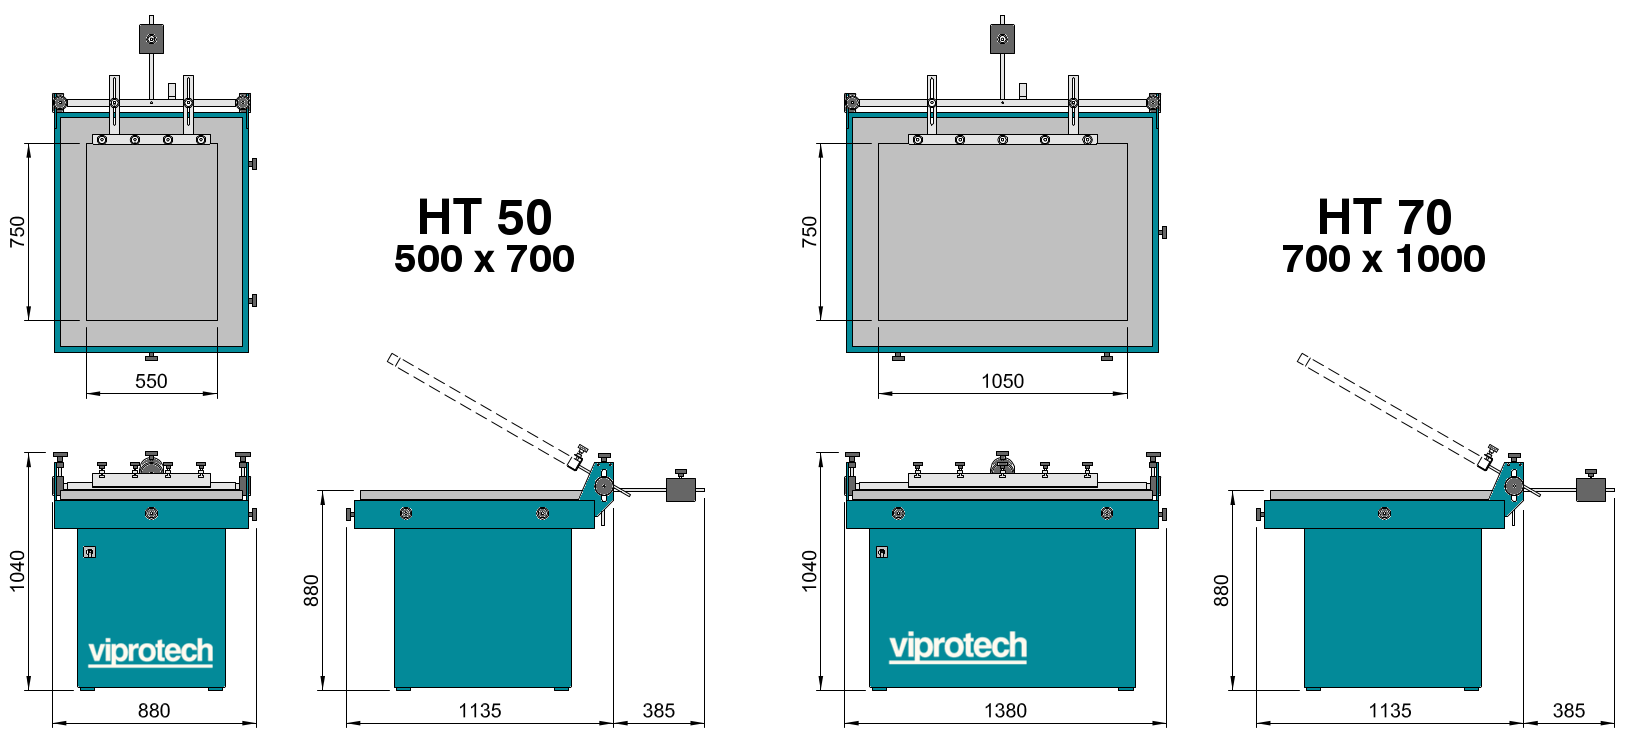 Viprotech-Dimensions-HT50-HT70